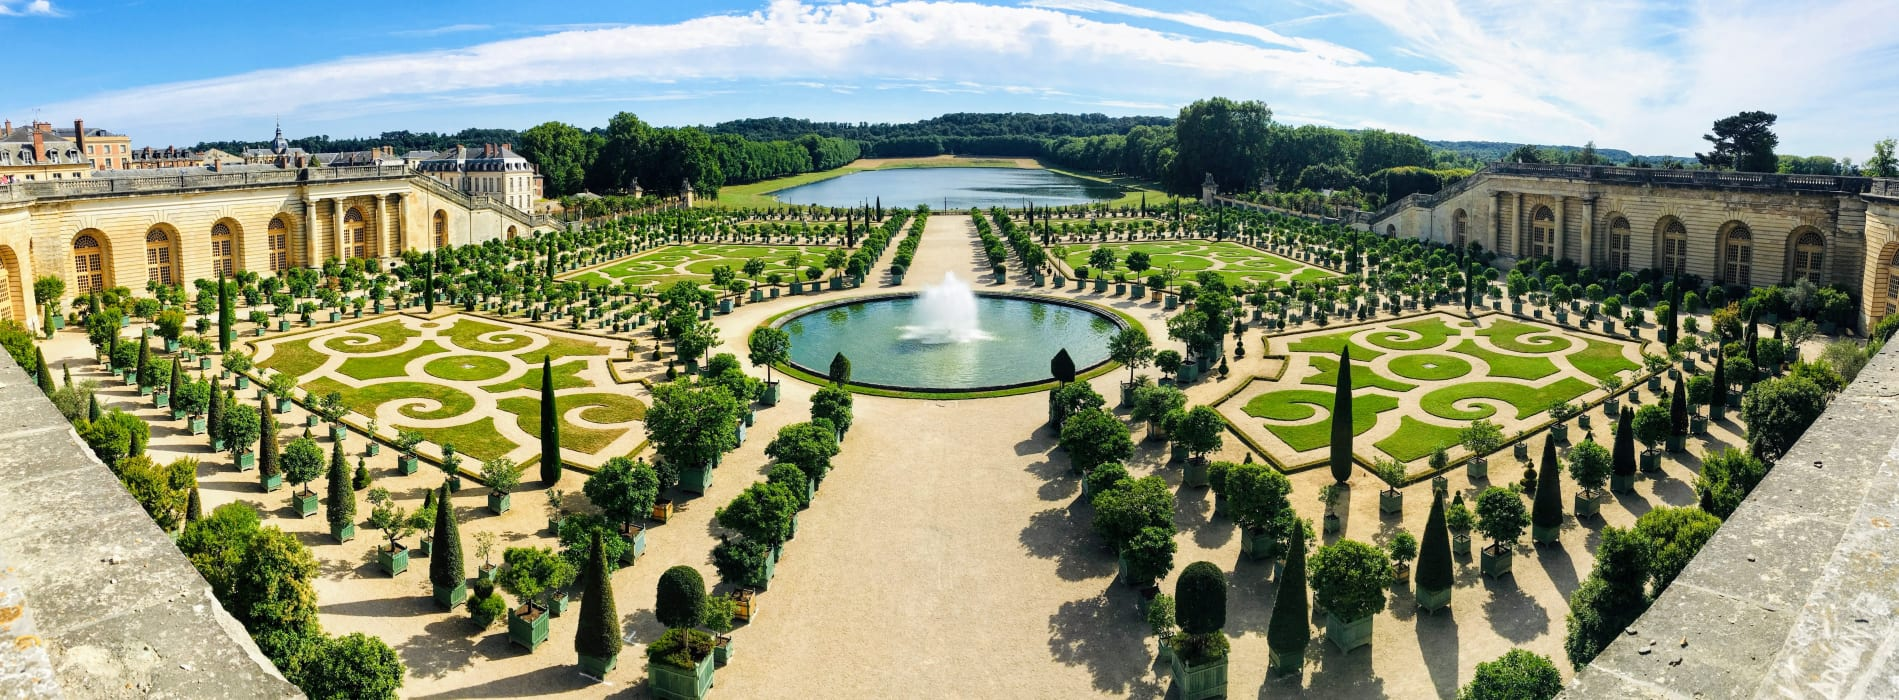 Paris - Gardens of Versailles